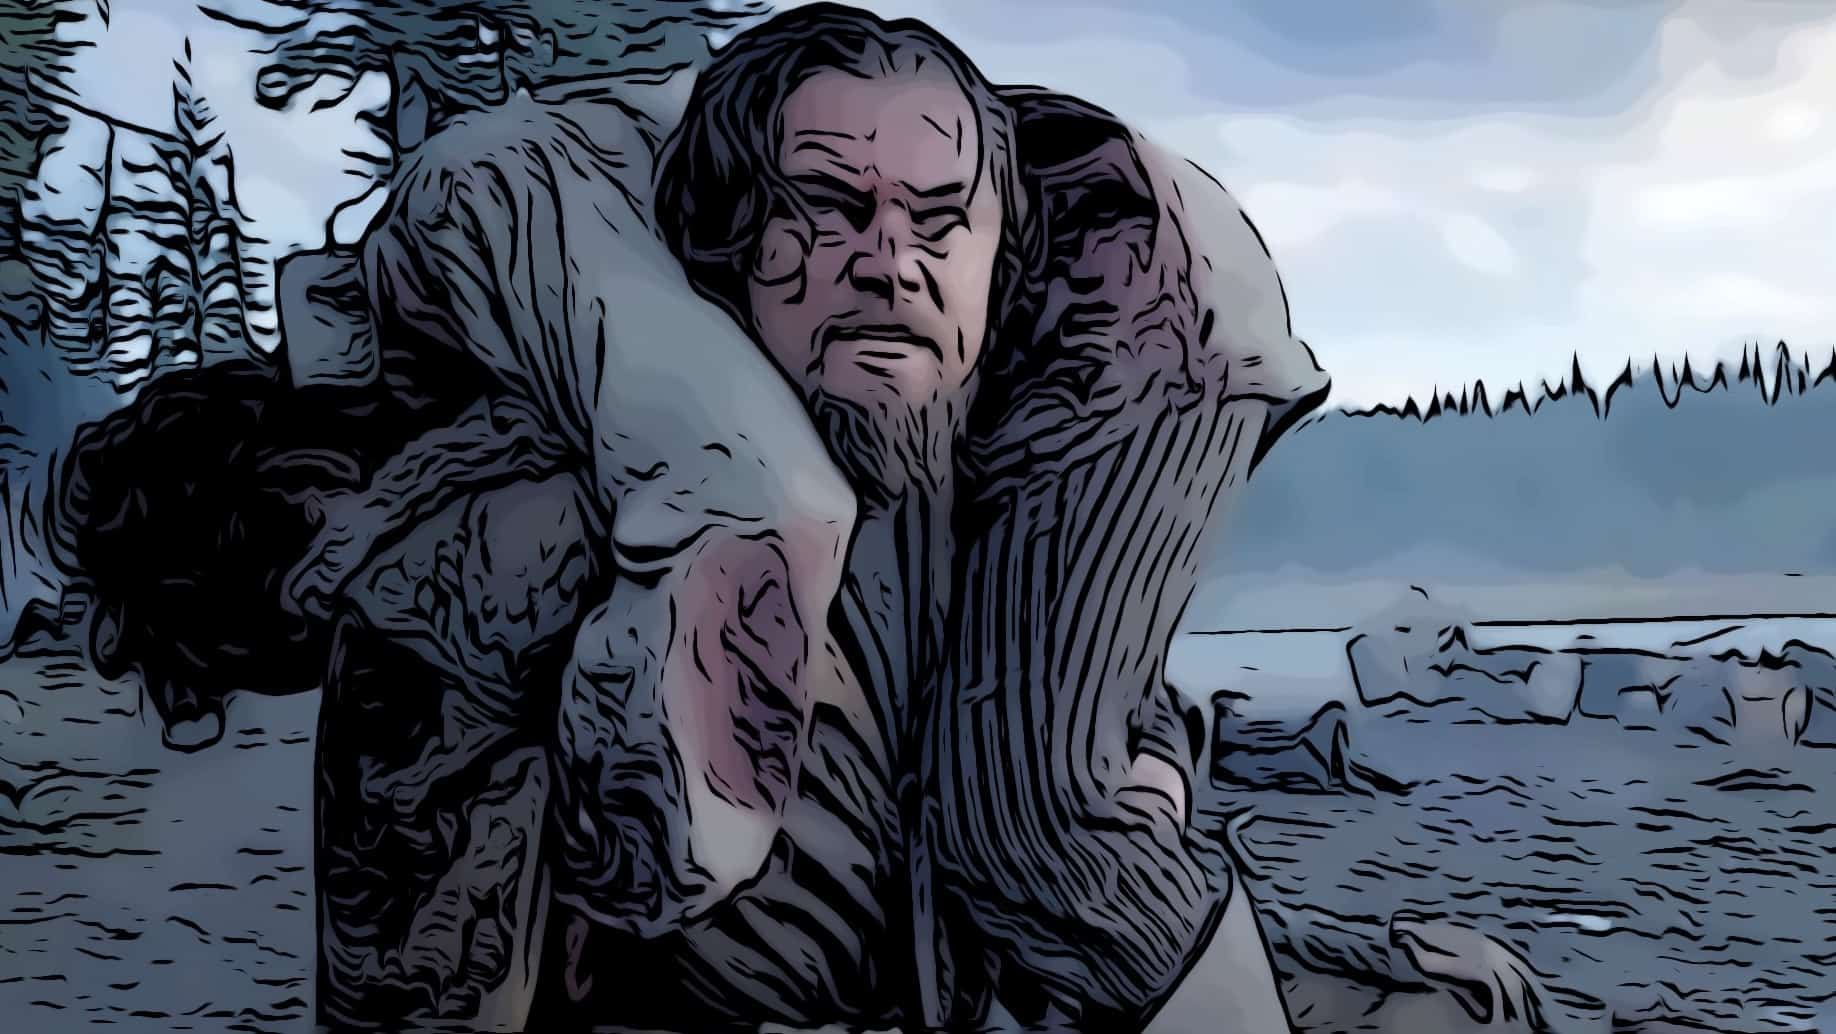 Scene from The Revenant for best survival movies post.